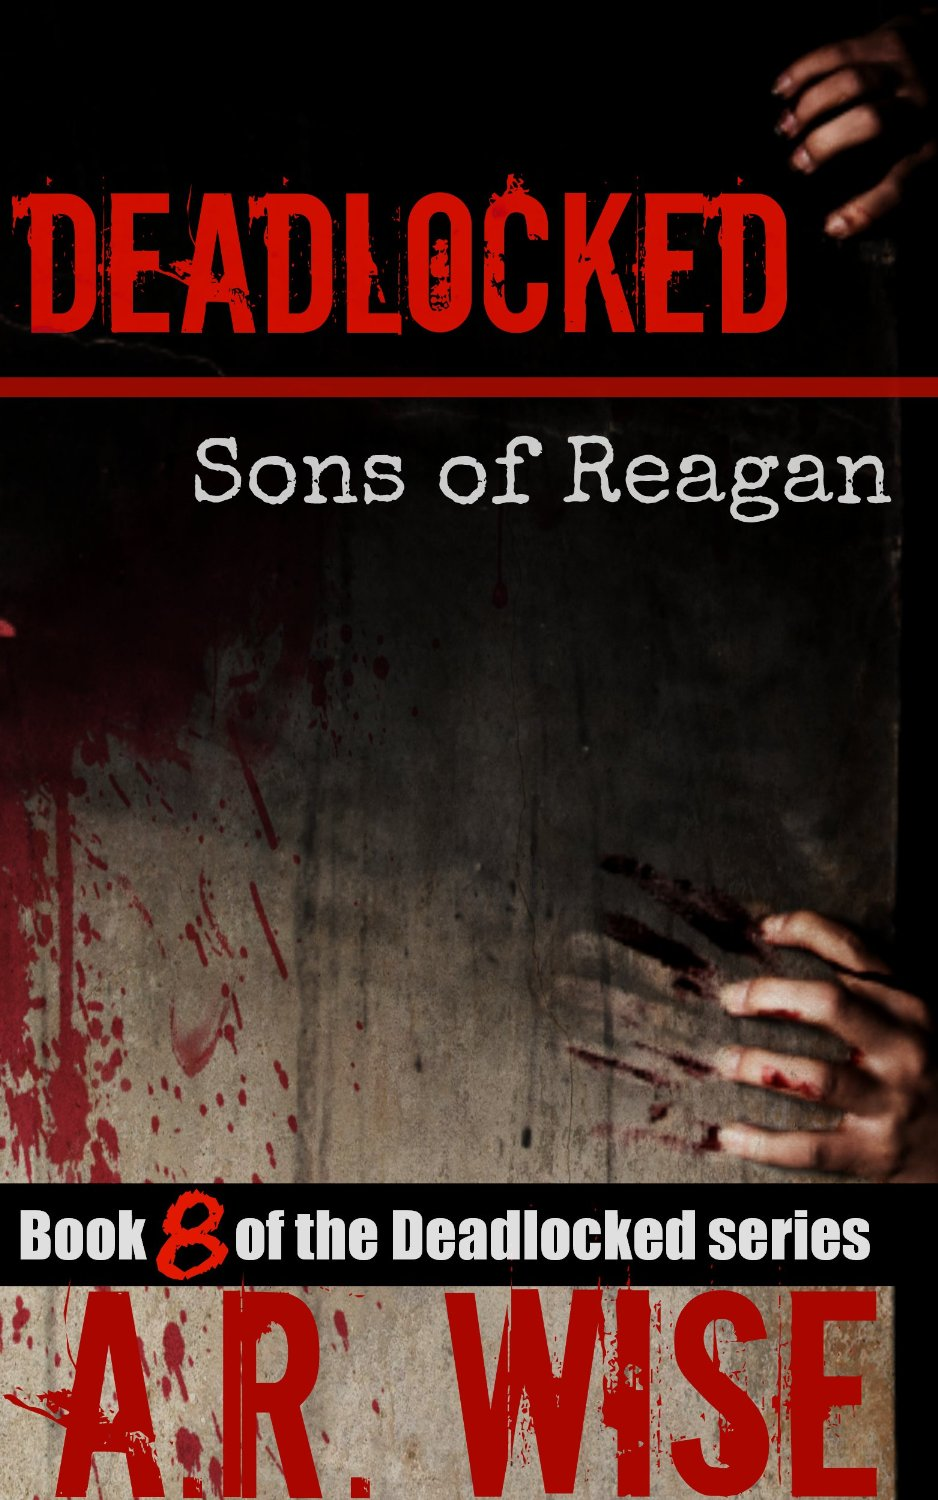 Available for  Pre-Order  on Audible.com!  Releasing 7.22.14